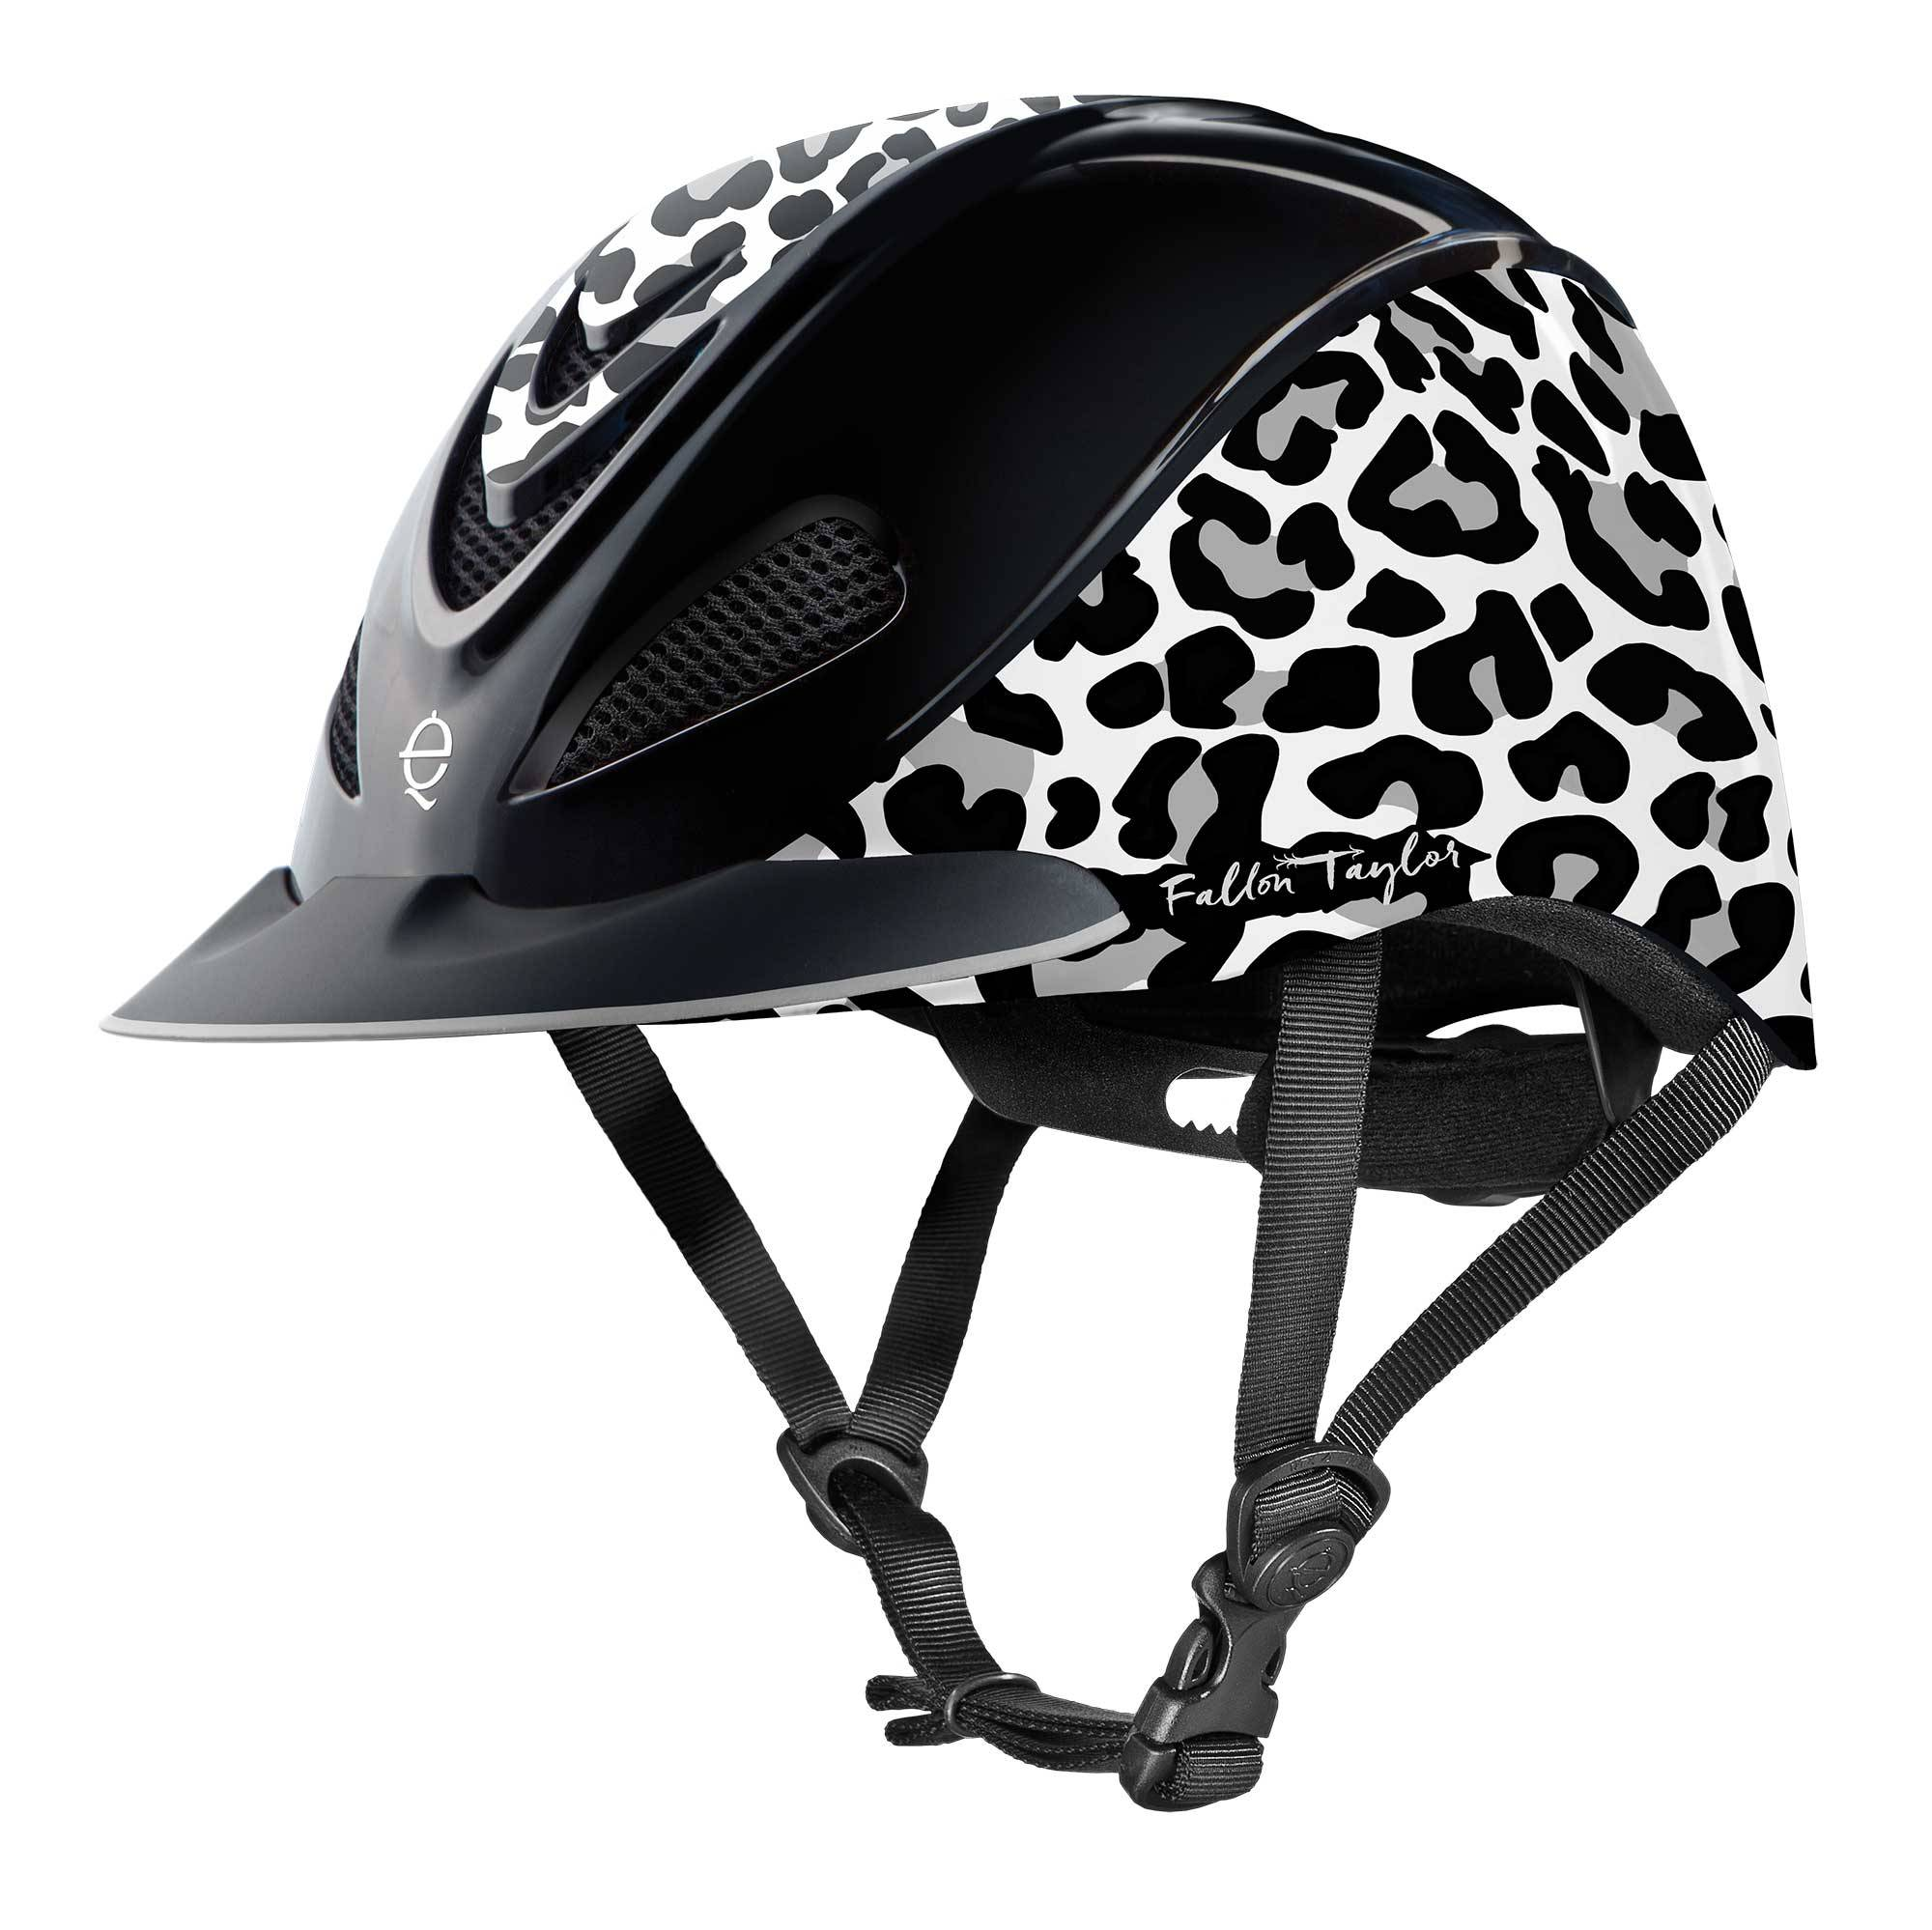 Troxel Fallon Taylor Helmet - Snow Leopard - FREE Cap with Purchase